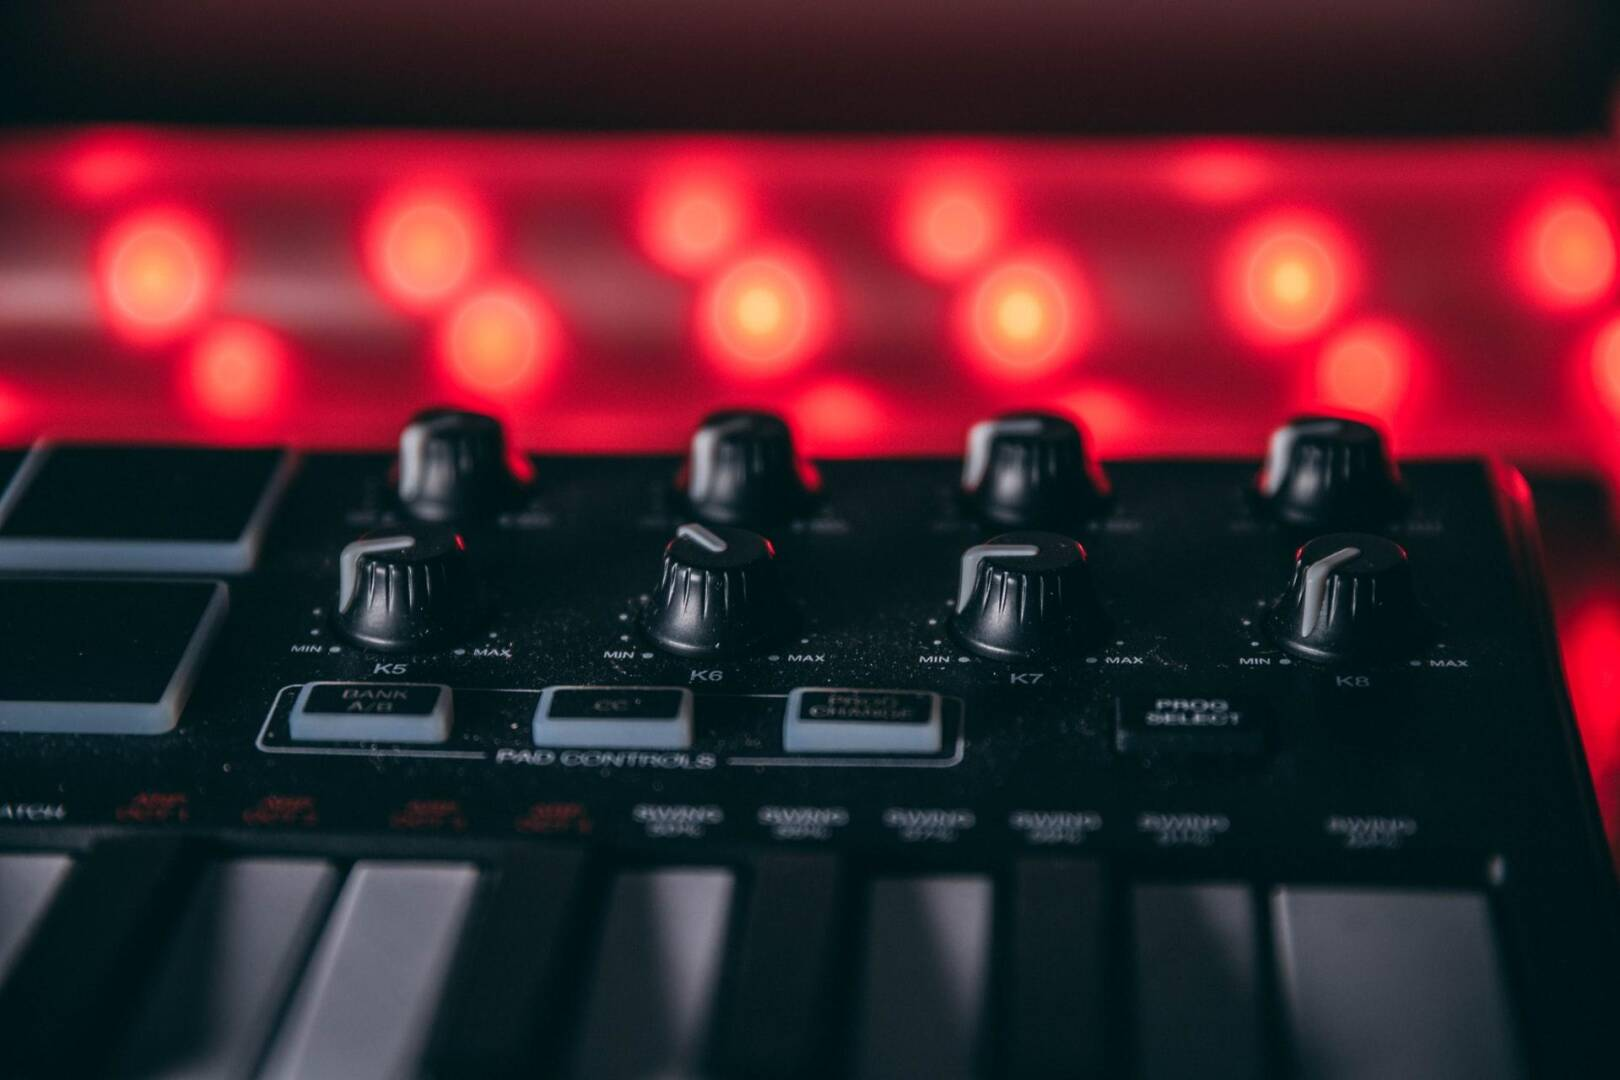 The MIDI Keyboard Controller for You